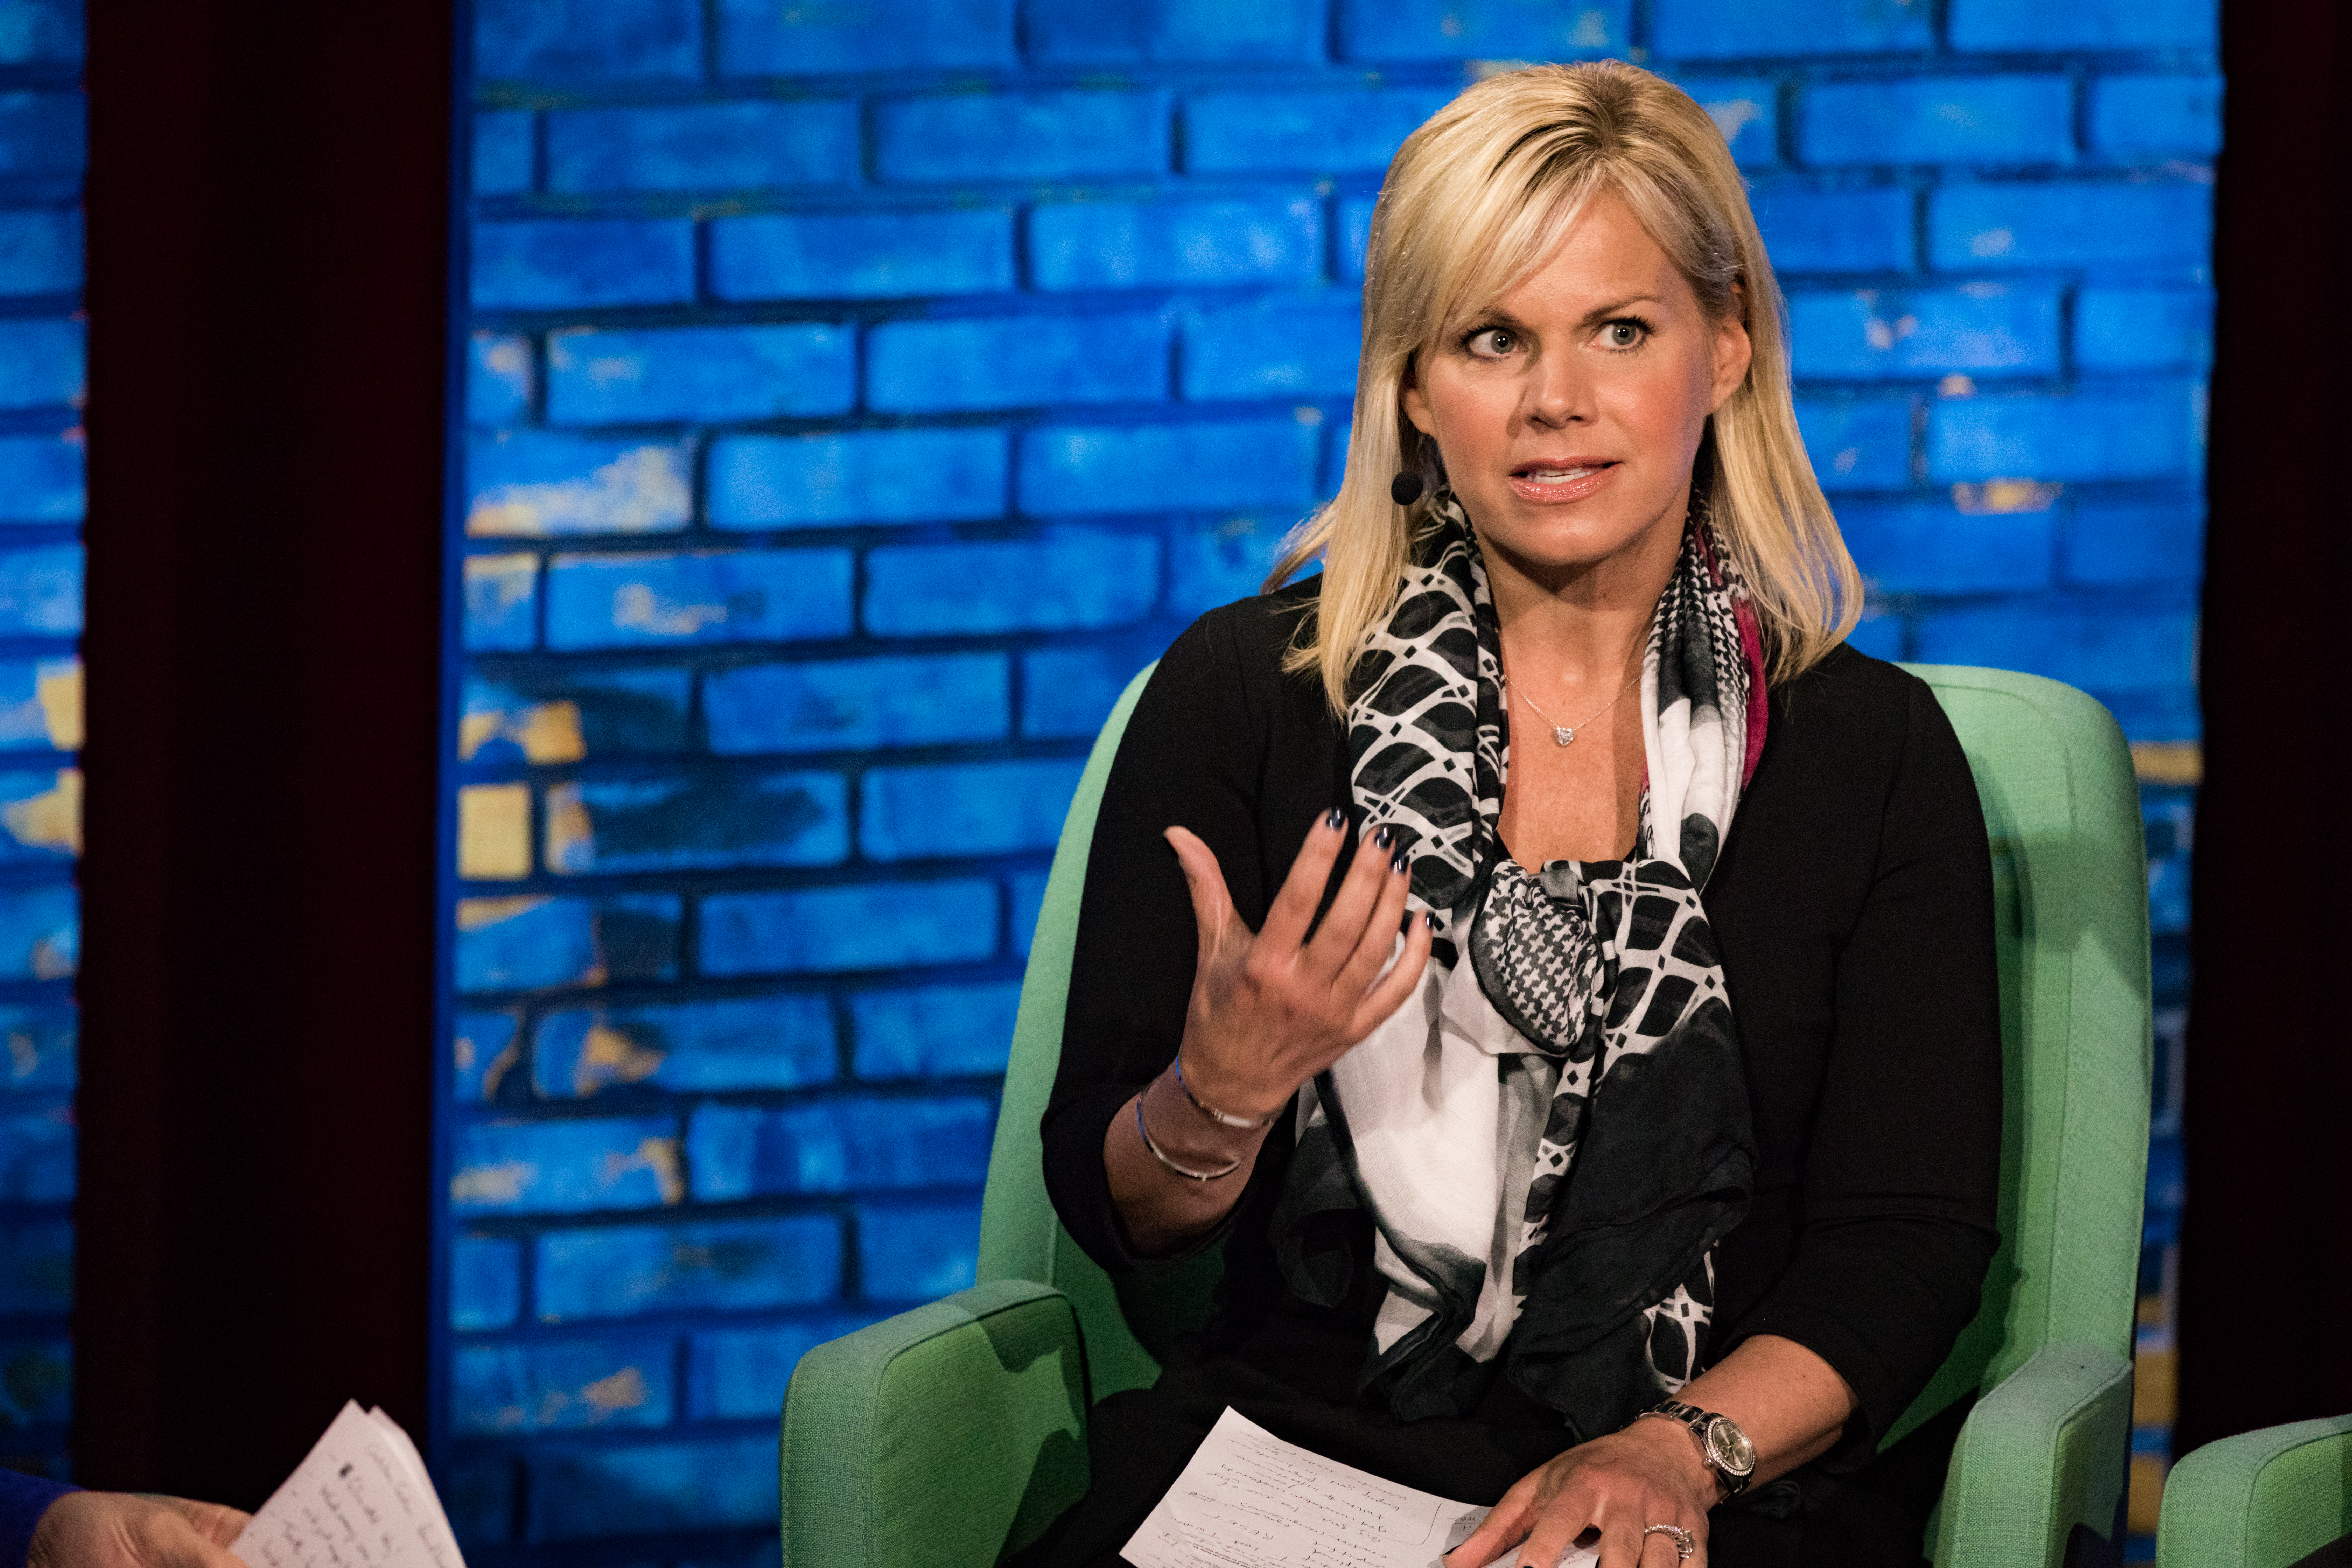 Gretchen Carlson speaks at TED Dialogues via Facebook Live, March 01, 2017, New York, NY. Photo: Jasmina Tomic / TED